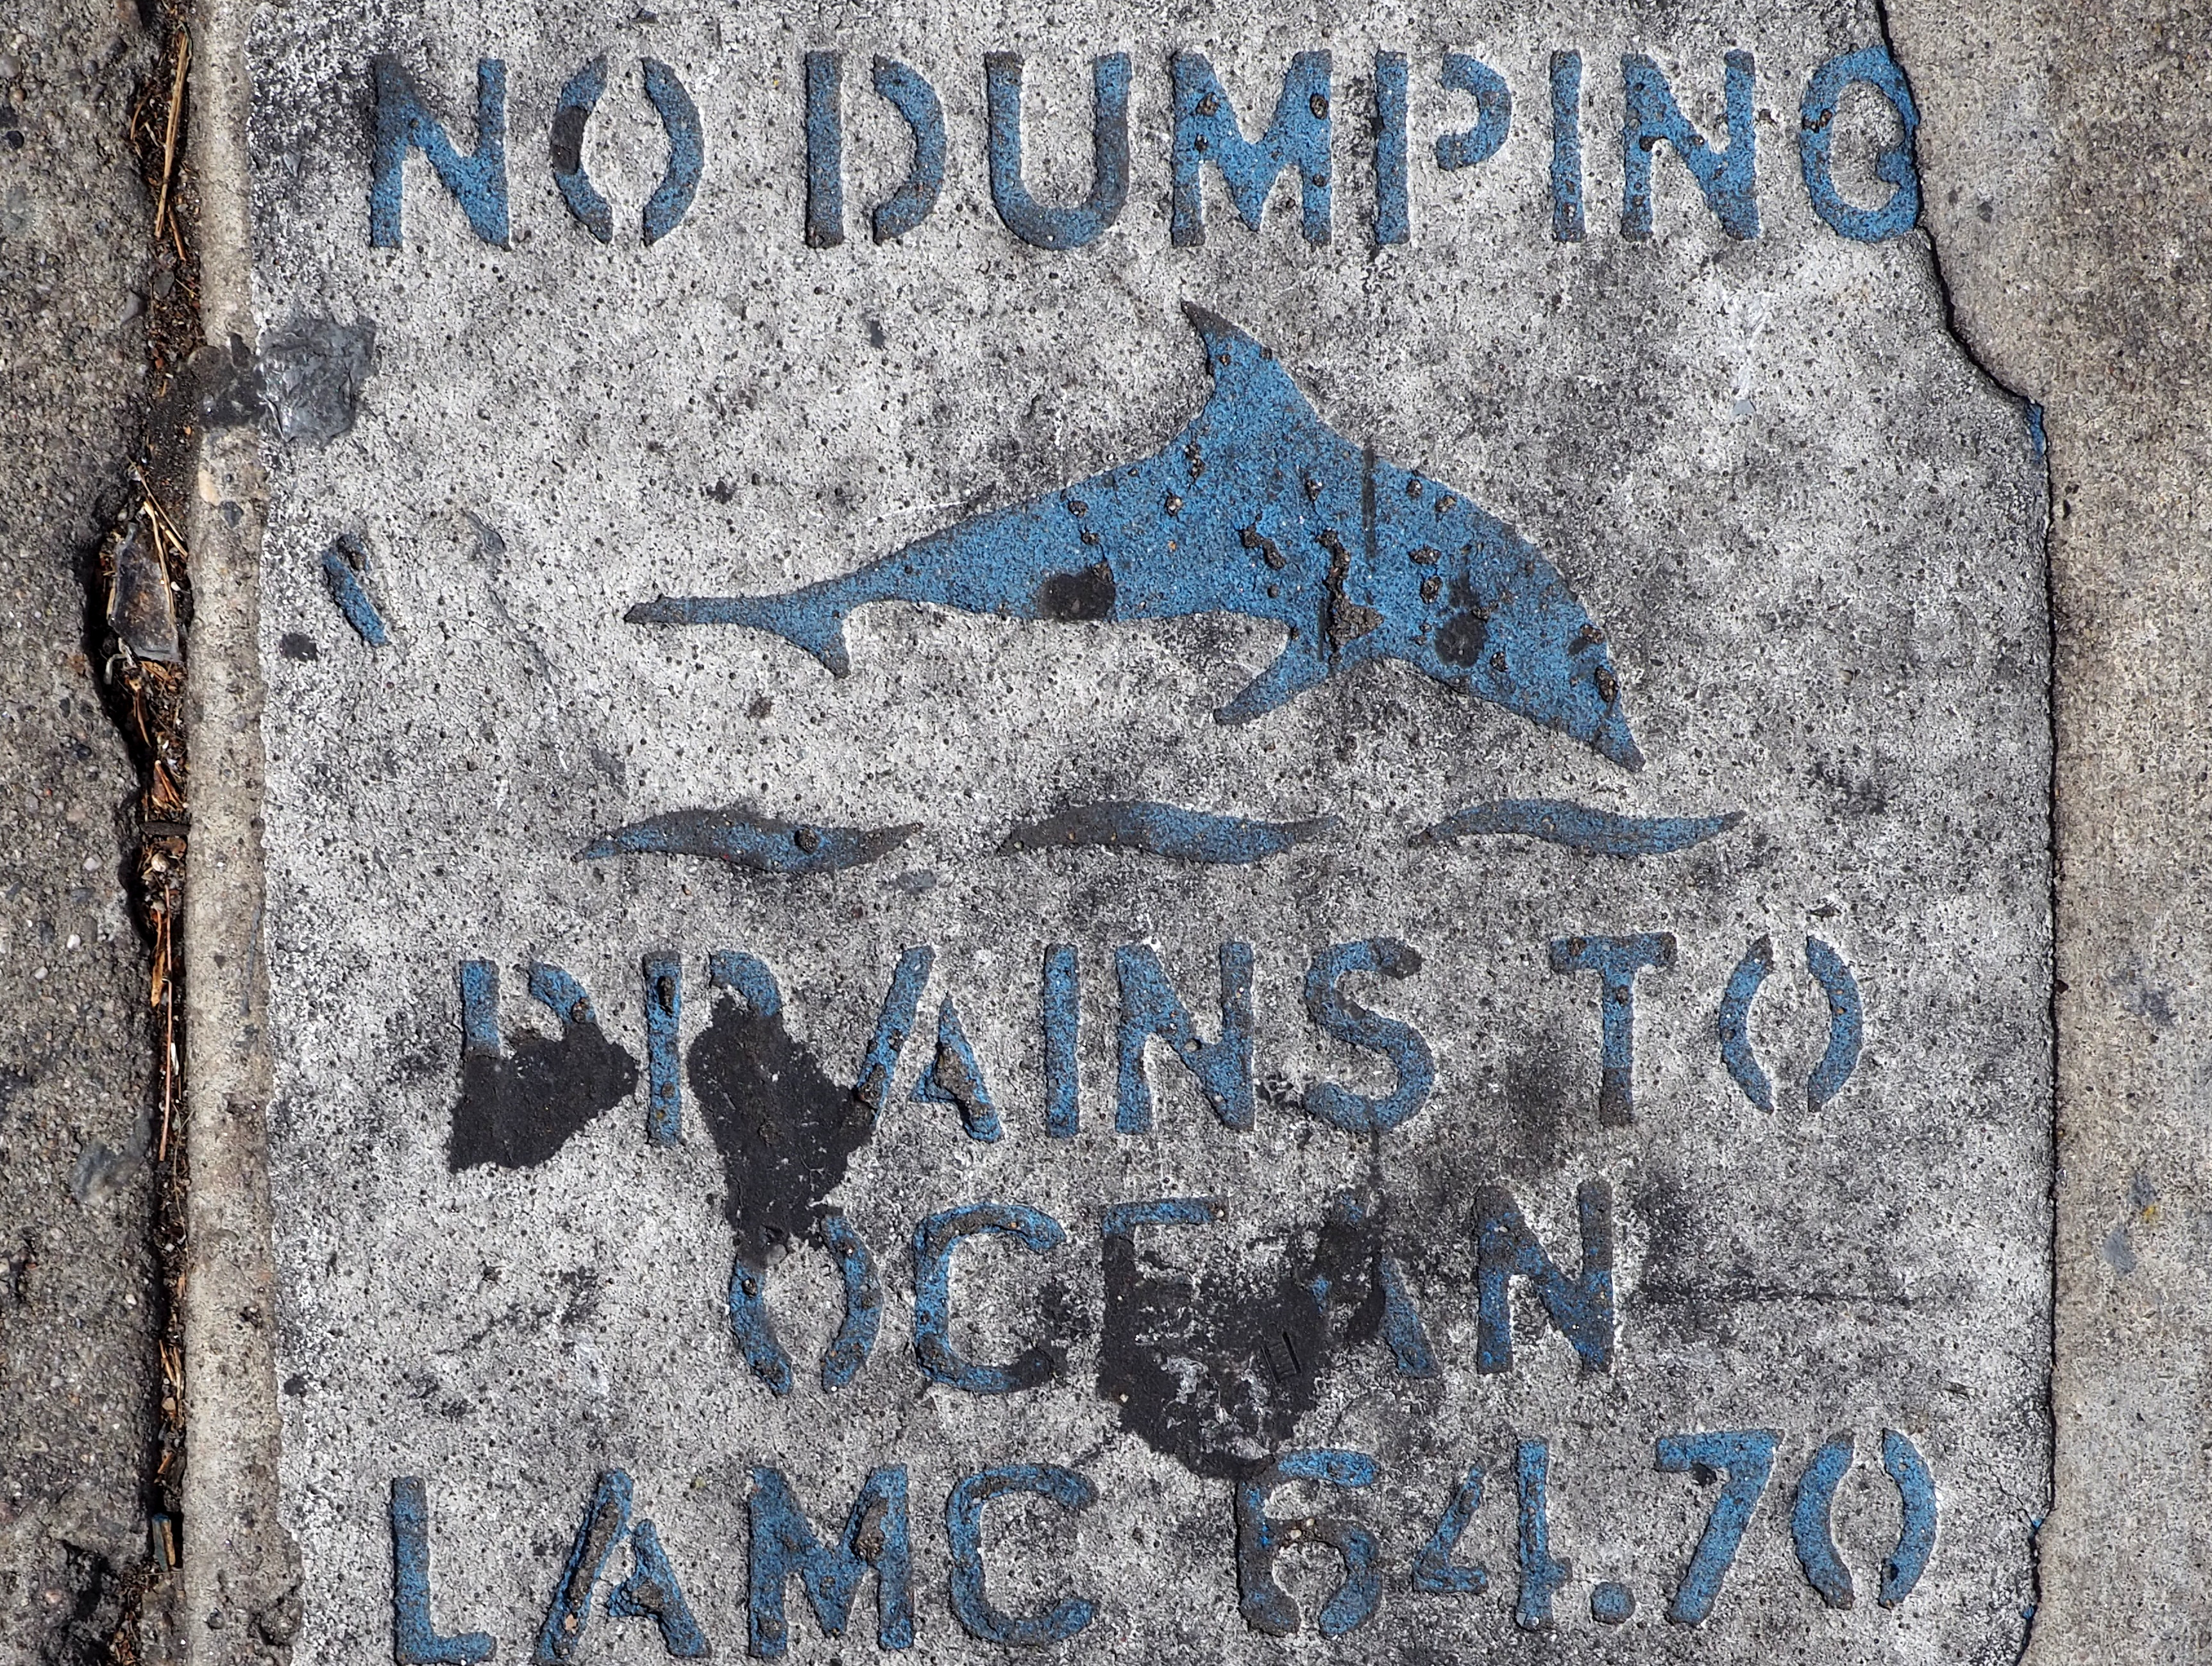 No dumping, drains to Ocean.